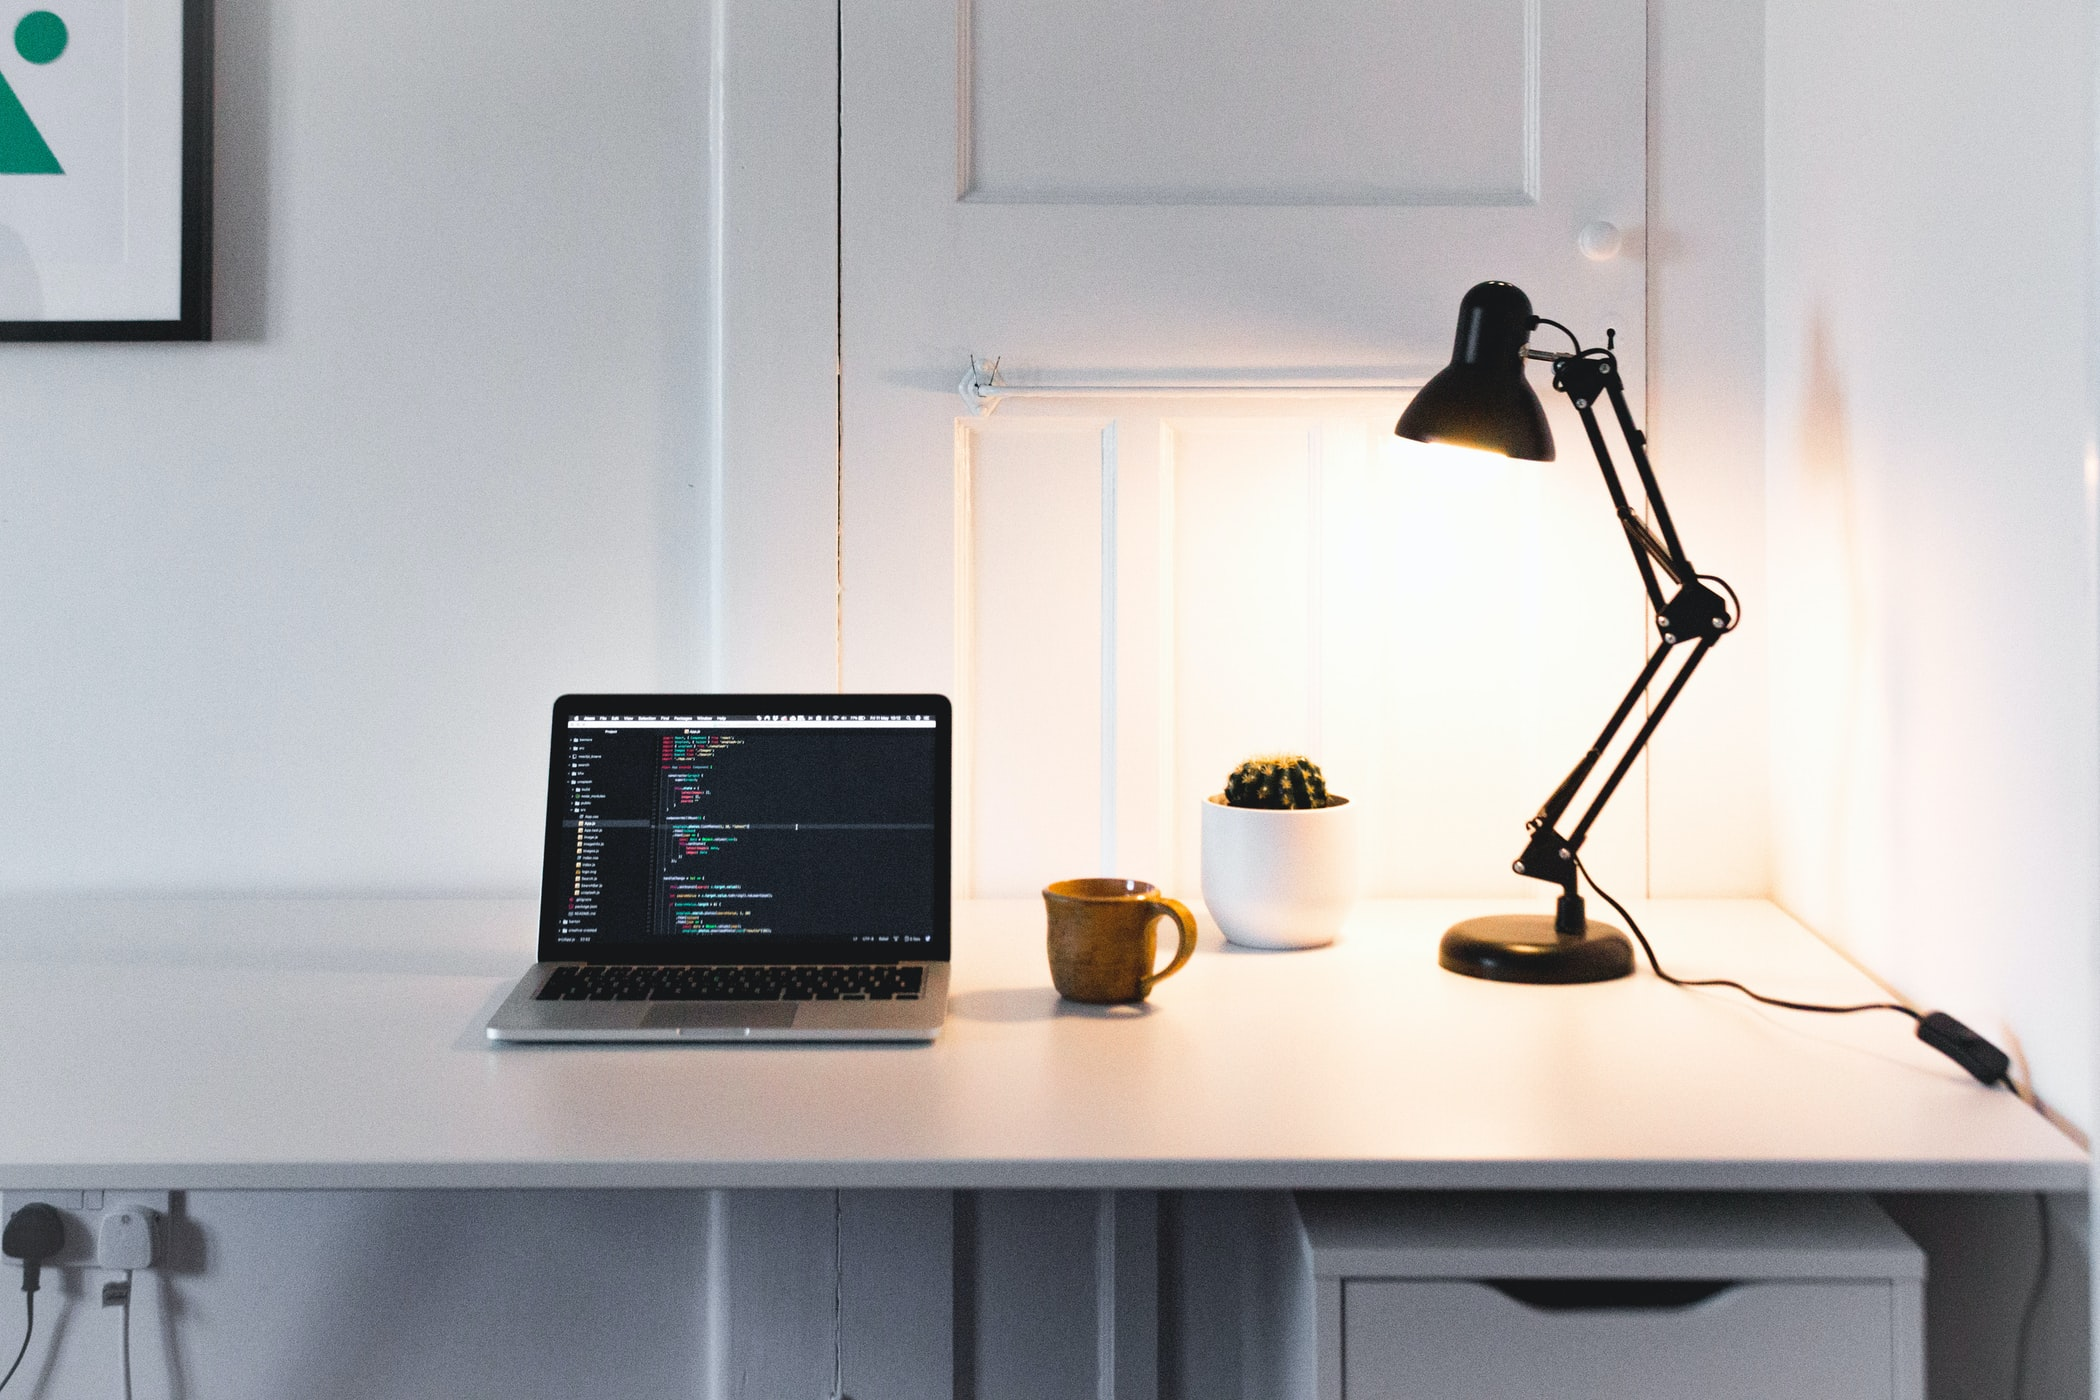 Laptop on top of a white desk, with code on the screen, next to an orange mug, a cactus and a black lamp.